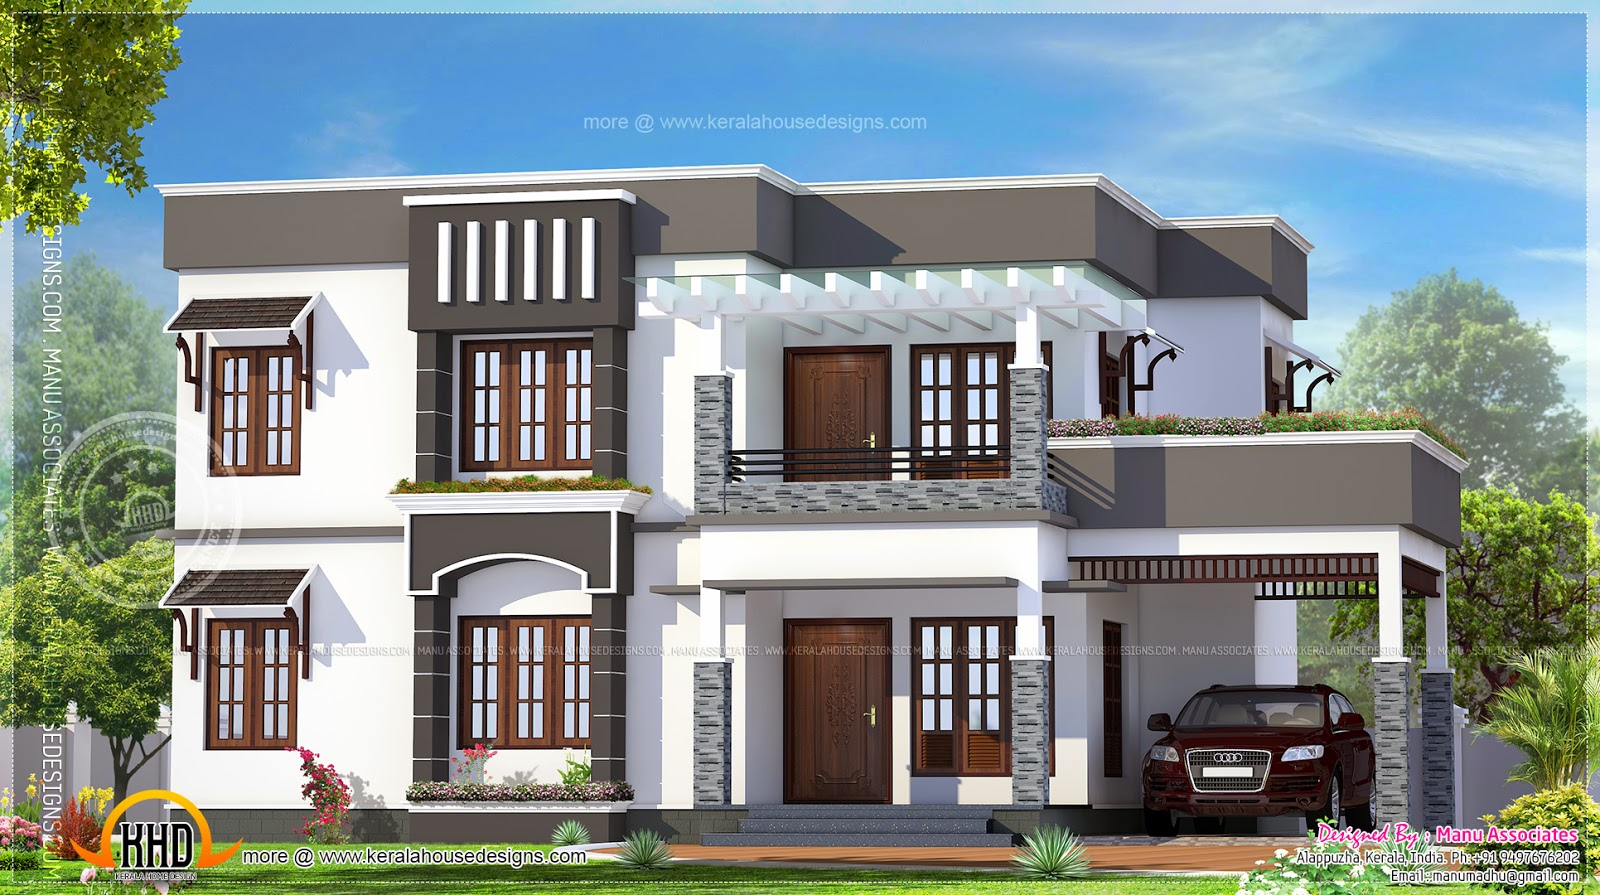 4 bhk flat roof house exterior kerala home design and for Indian home outer design